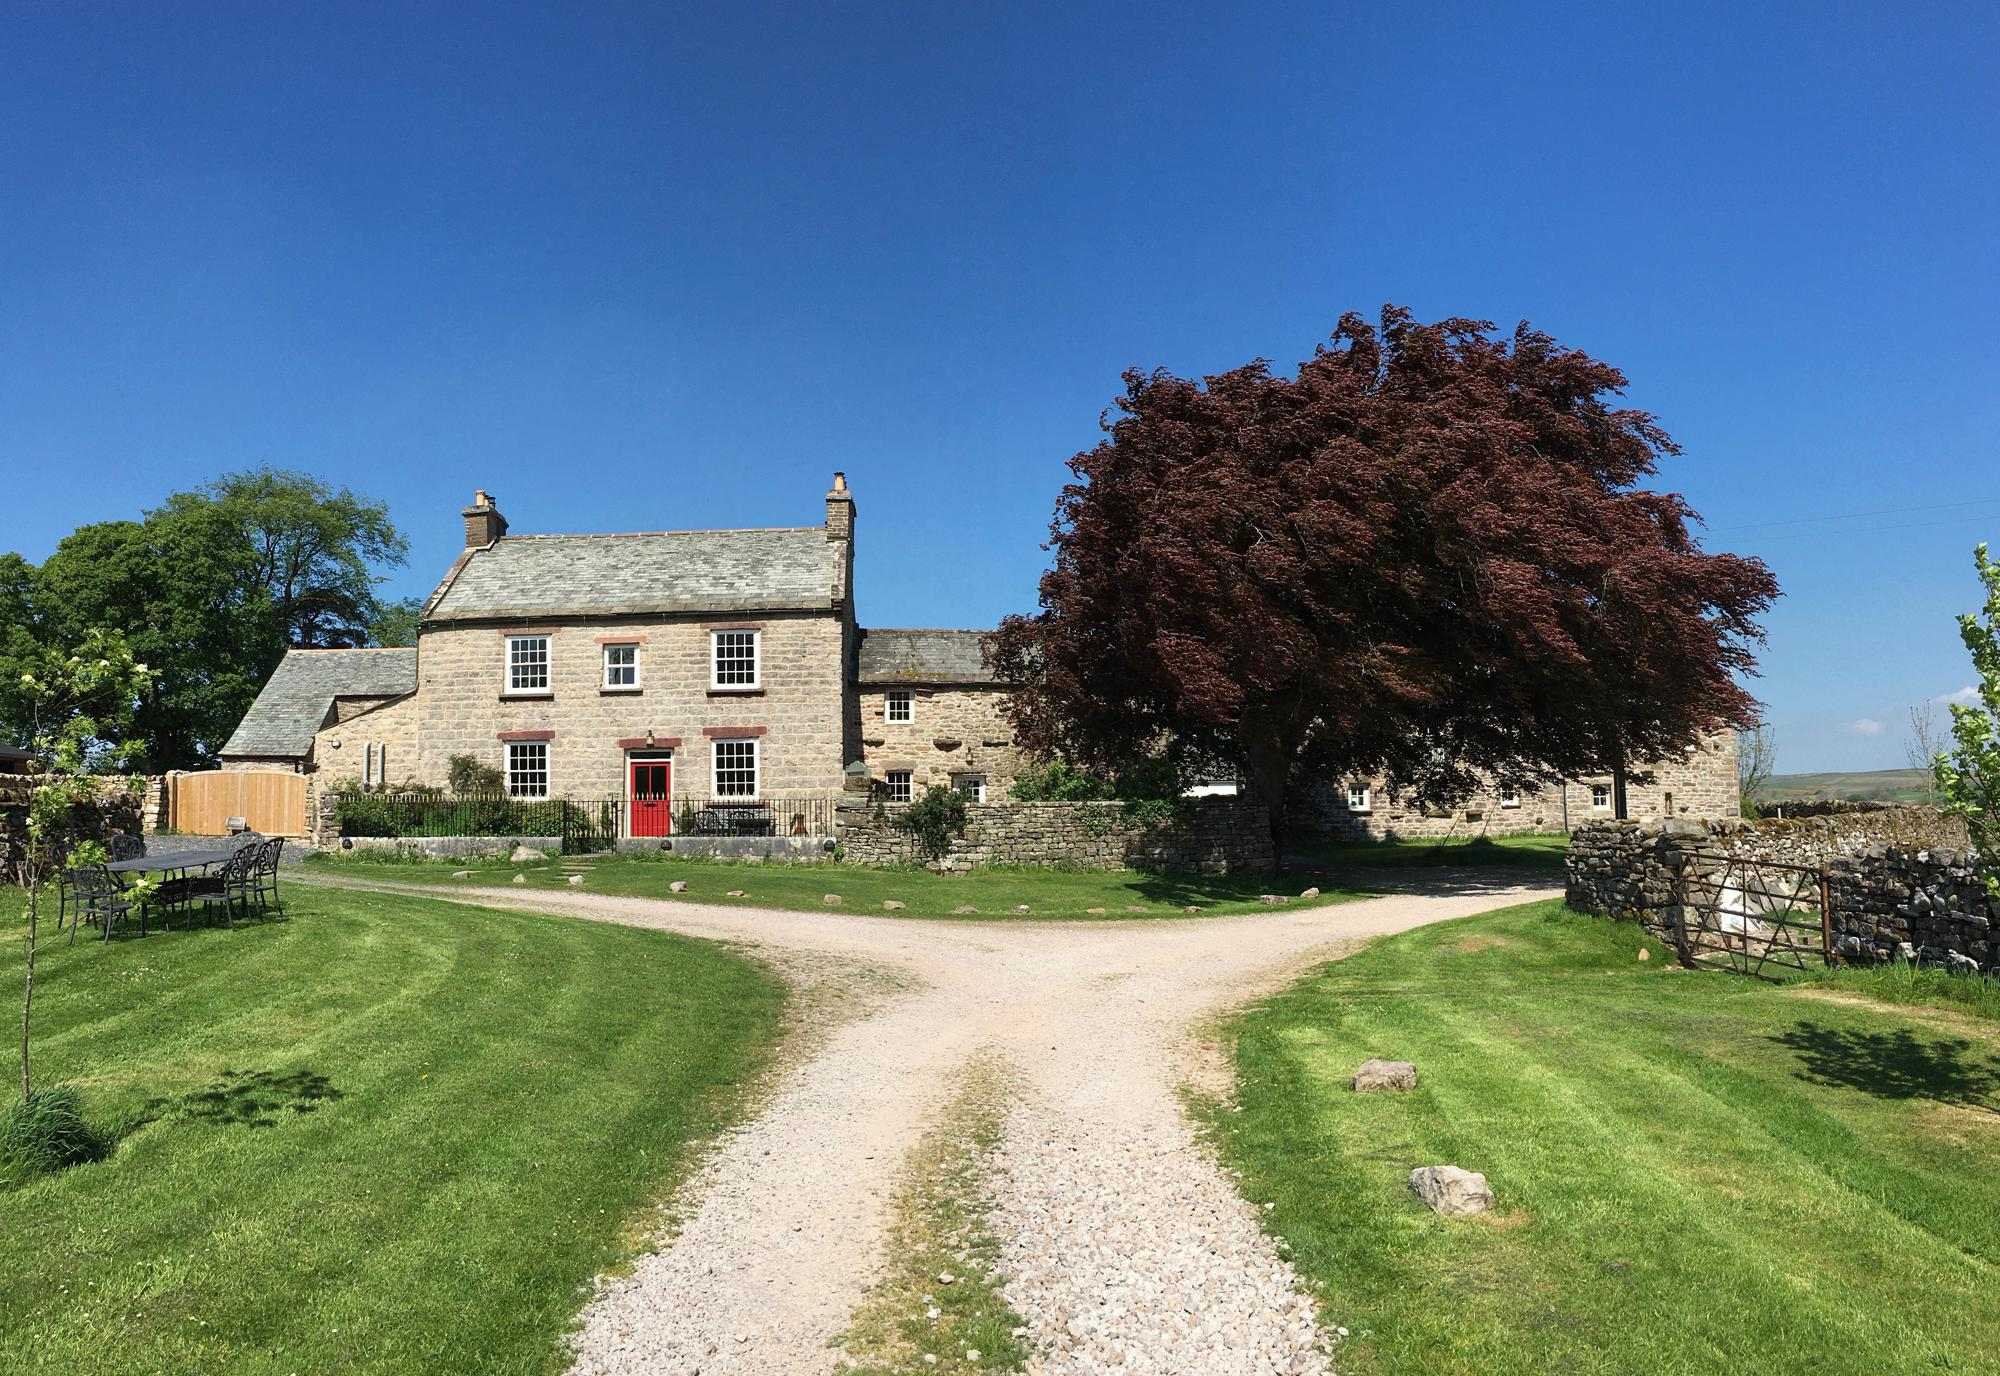 Self-Catering in Kirkby Stephen holidays at Cool Places